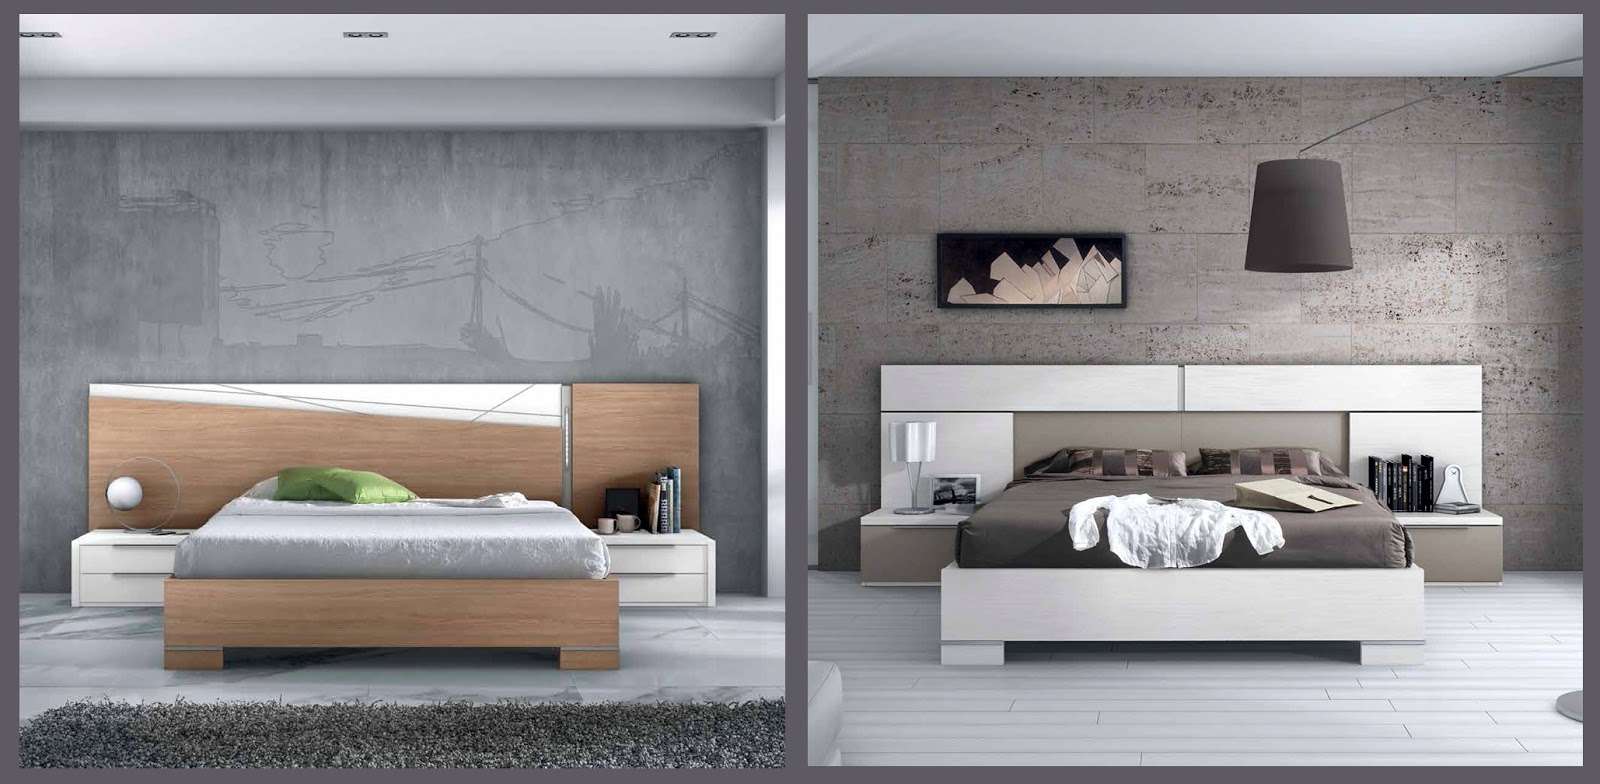 Salcedo mueble for Cabecero mesillas integradas